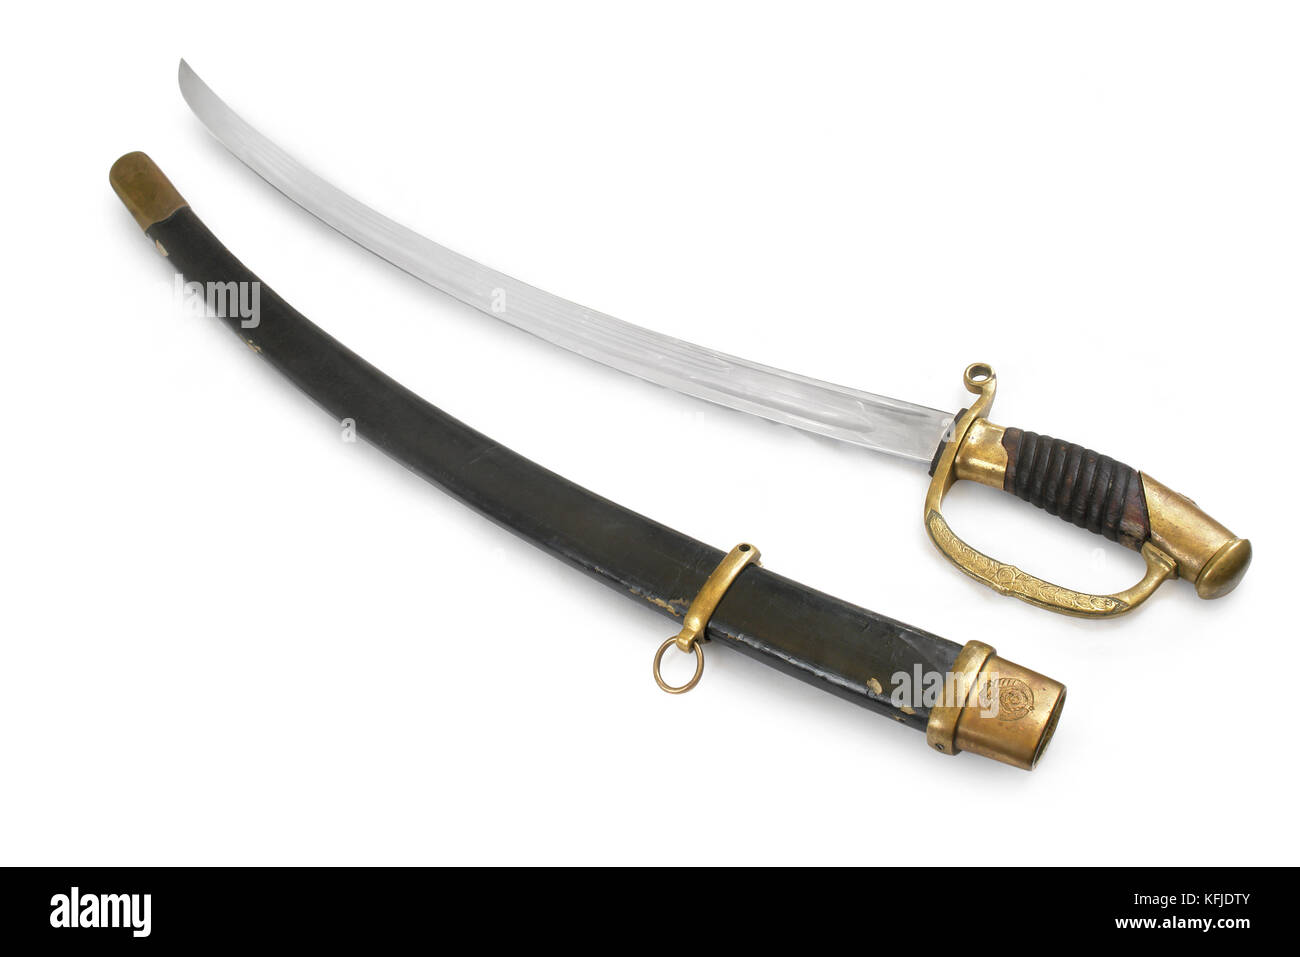 Soviet cavalry officer saber (sabre, cavalry sword). Former USSR. Path on white background. - Stock Image